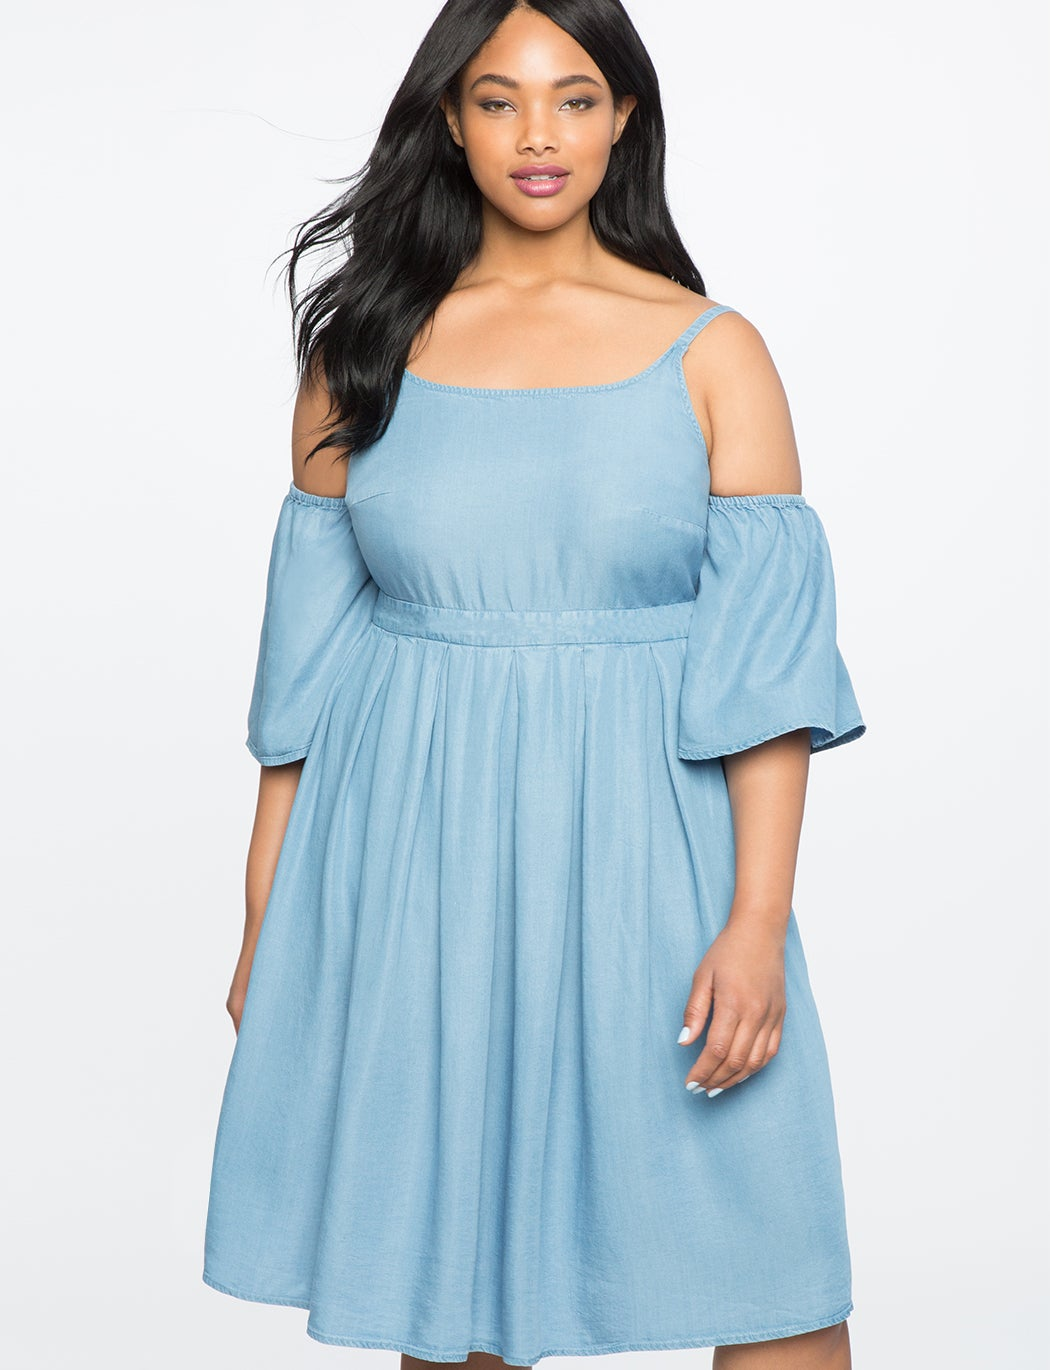 17 Pieces Every Curvy Girl Absolutely Needs From Eloquii's Clearance Sale